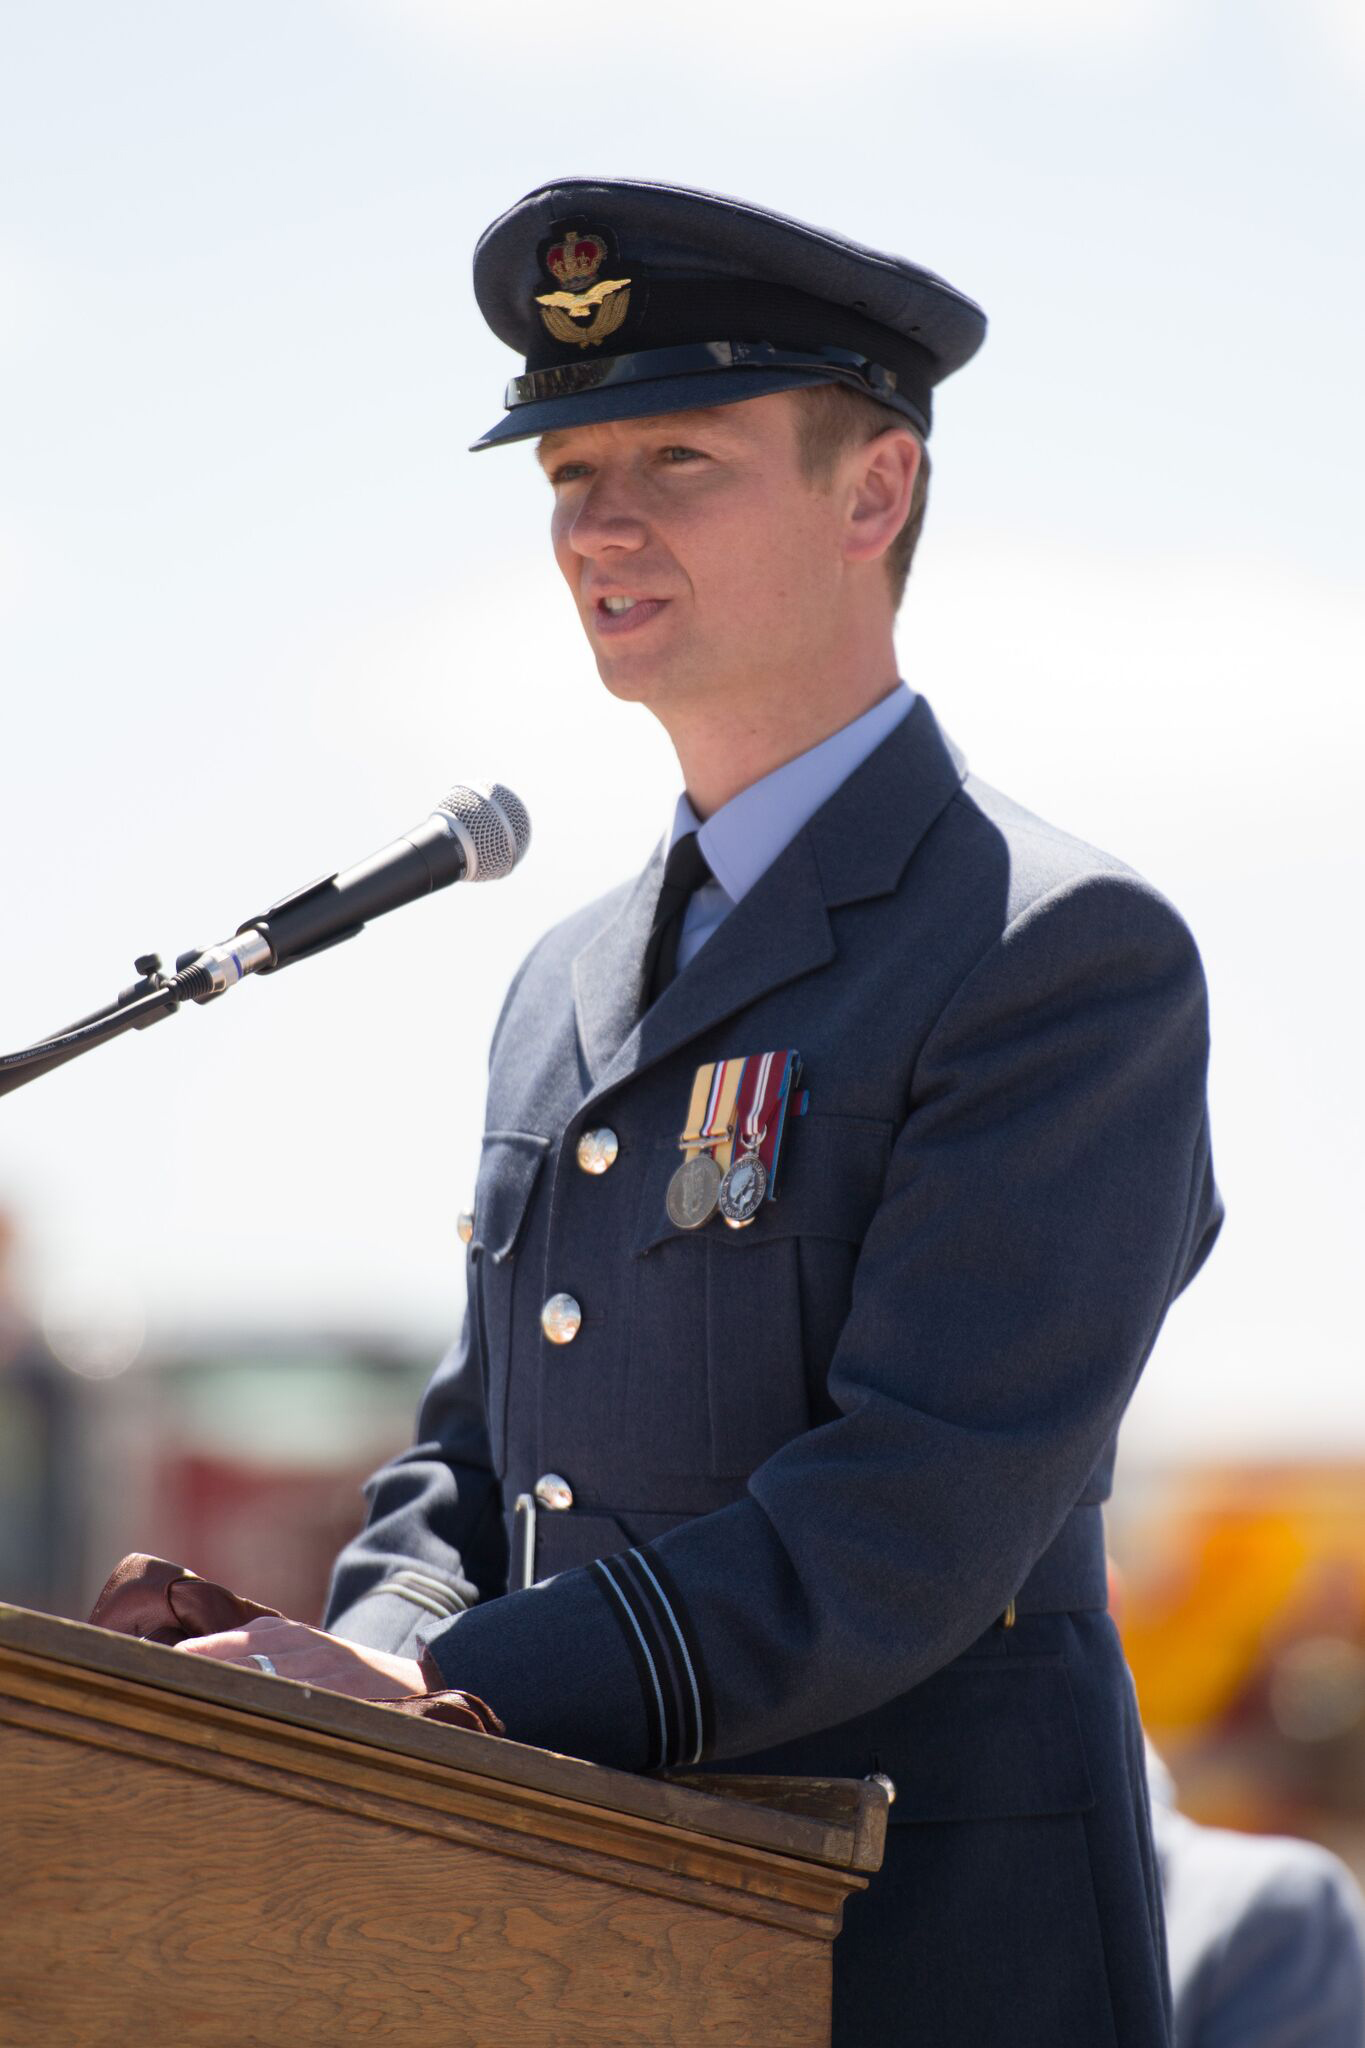 Flight Lieutenant James Andrews of the Royal Air Force addresses the crowd during No. 31 Elementary Flying Training School De Winton's 75th anniversary celebration on June 15, 2016. PHOTO: Courtesy of Anne Gafiuk